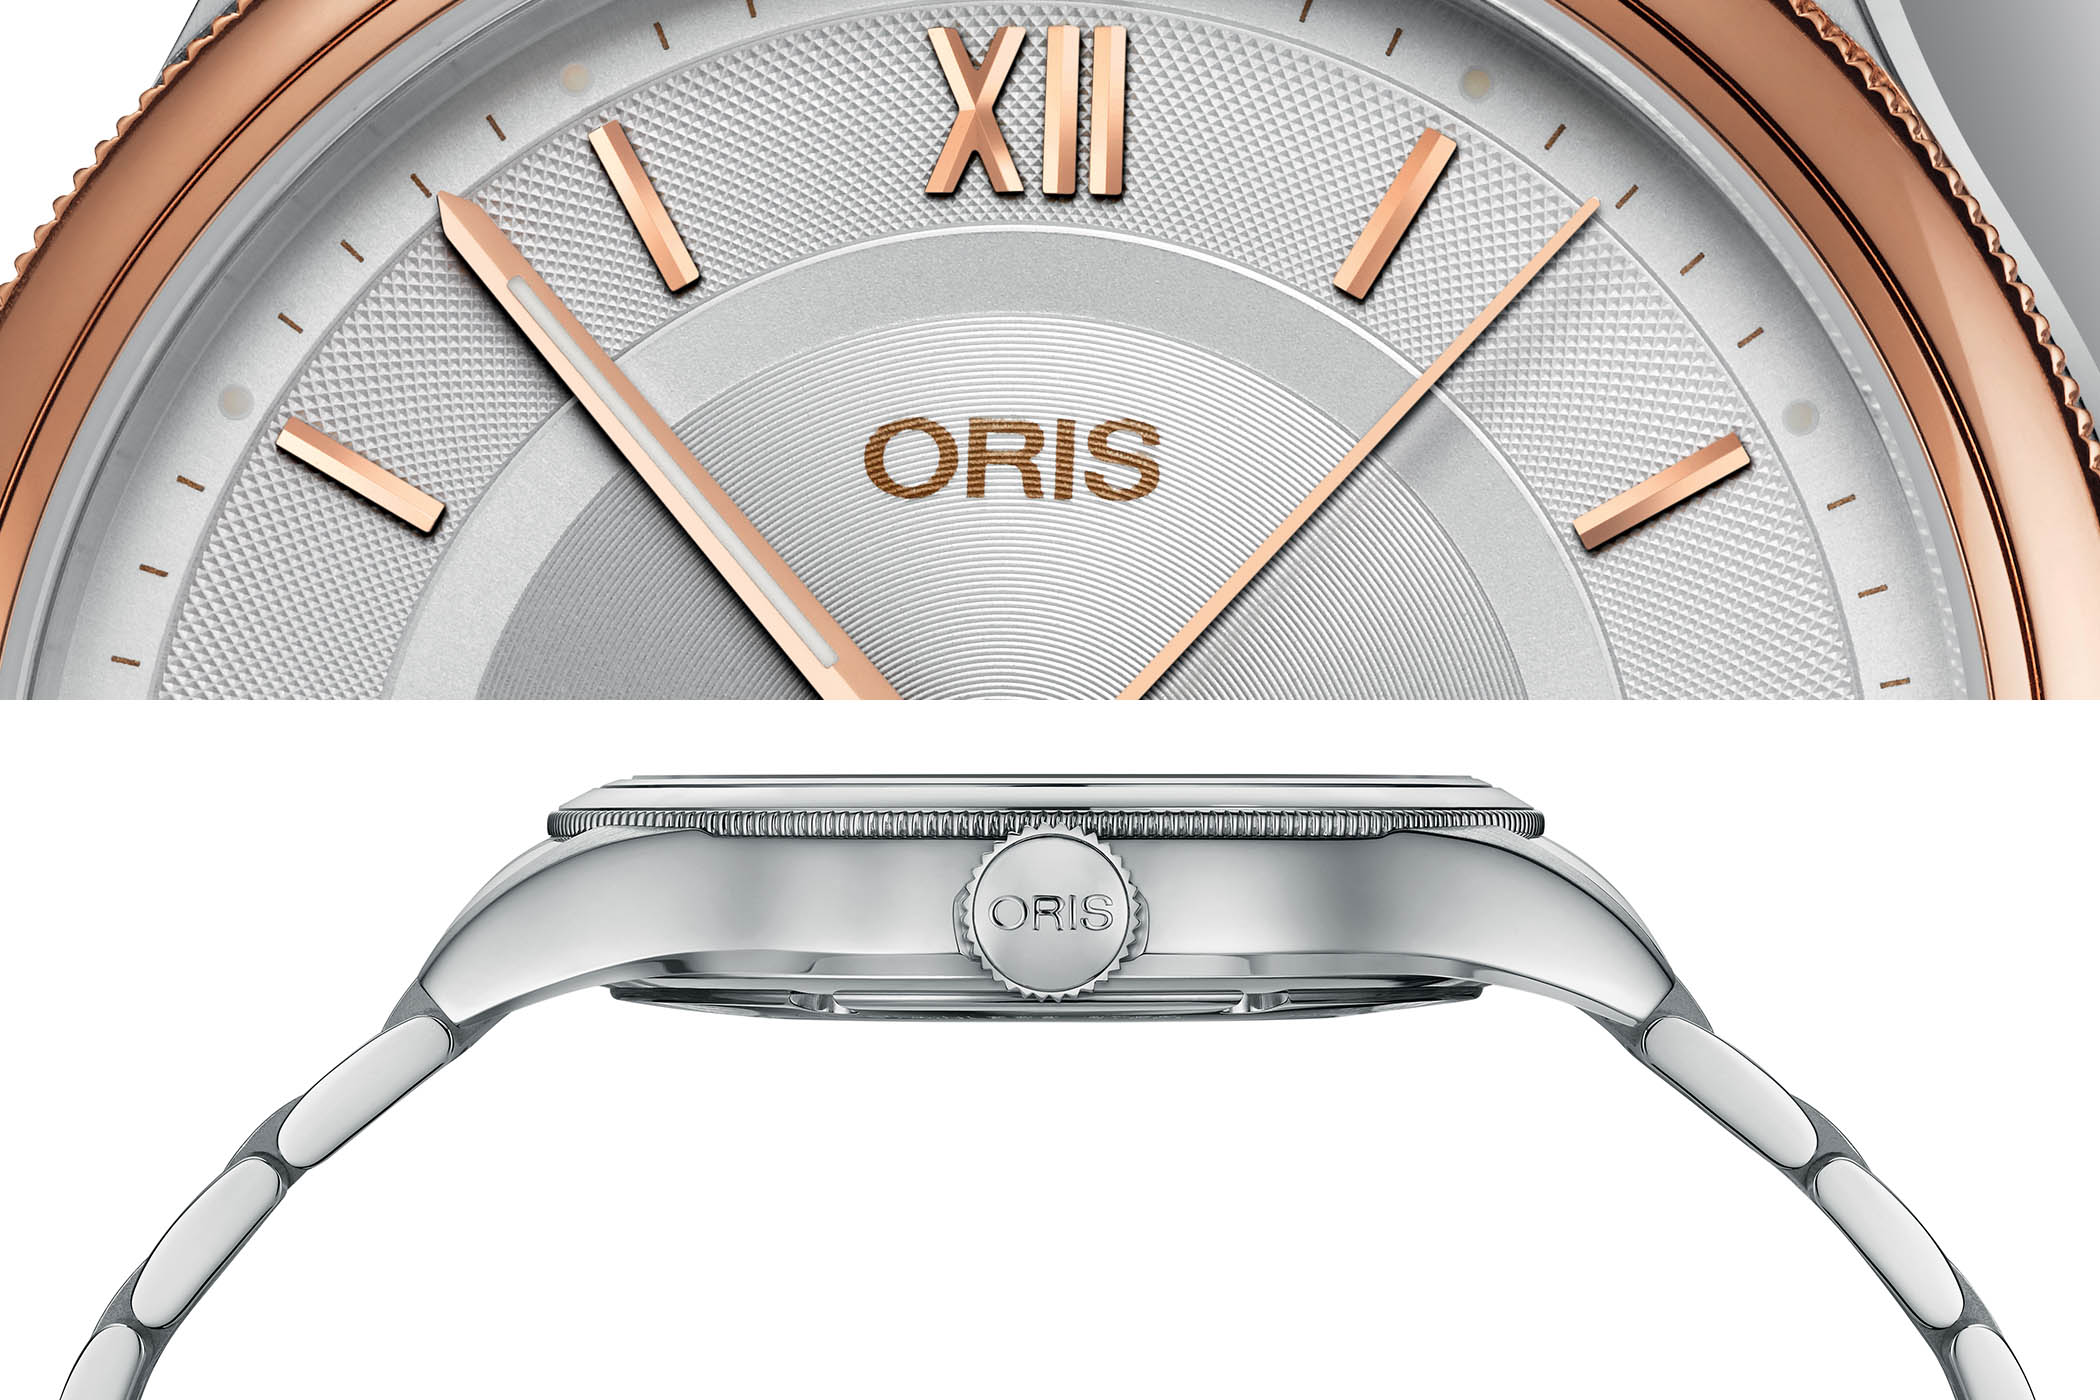 Oris Classic Date Collection 2017